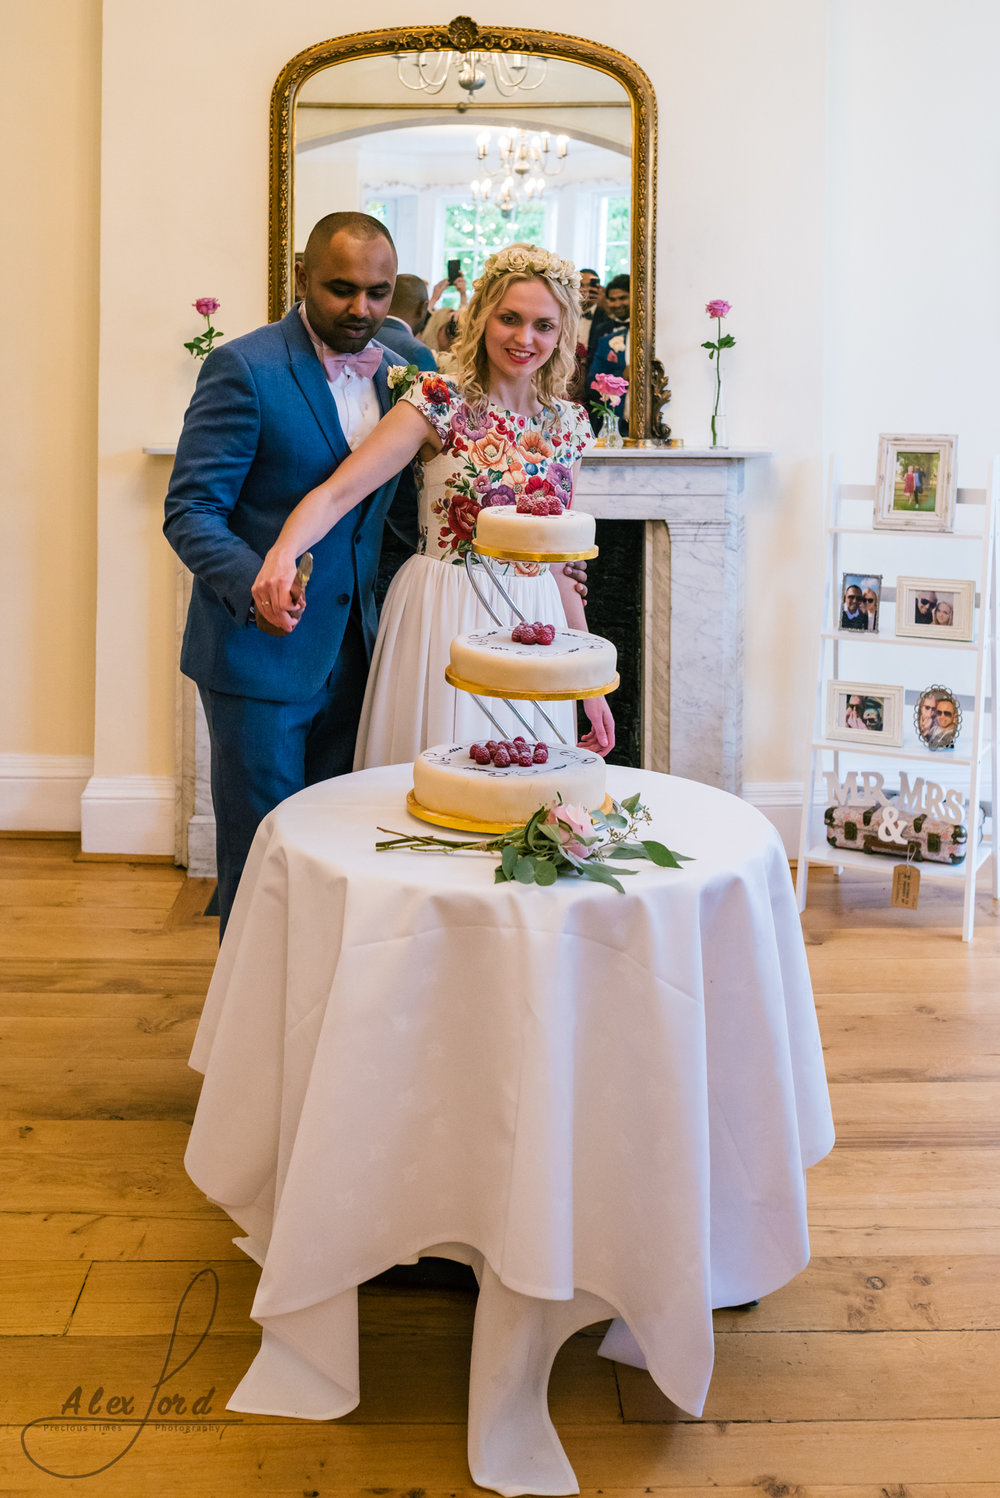 The bride and groom pose in front of a large mirror to cut their elegant wedding cake